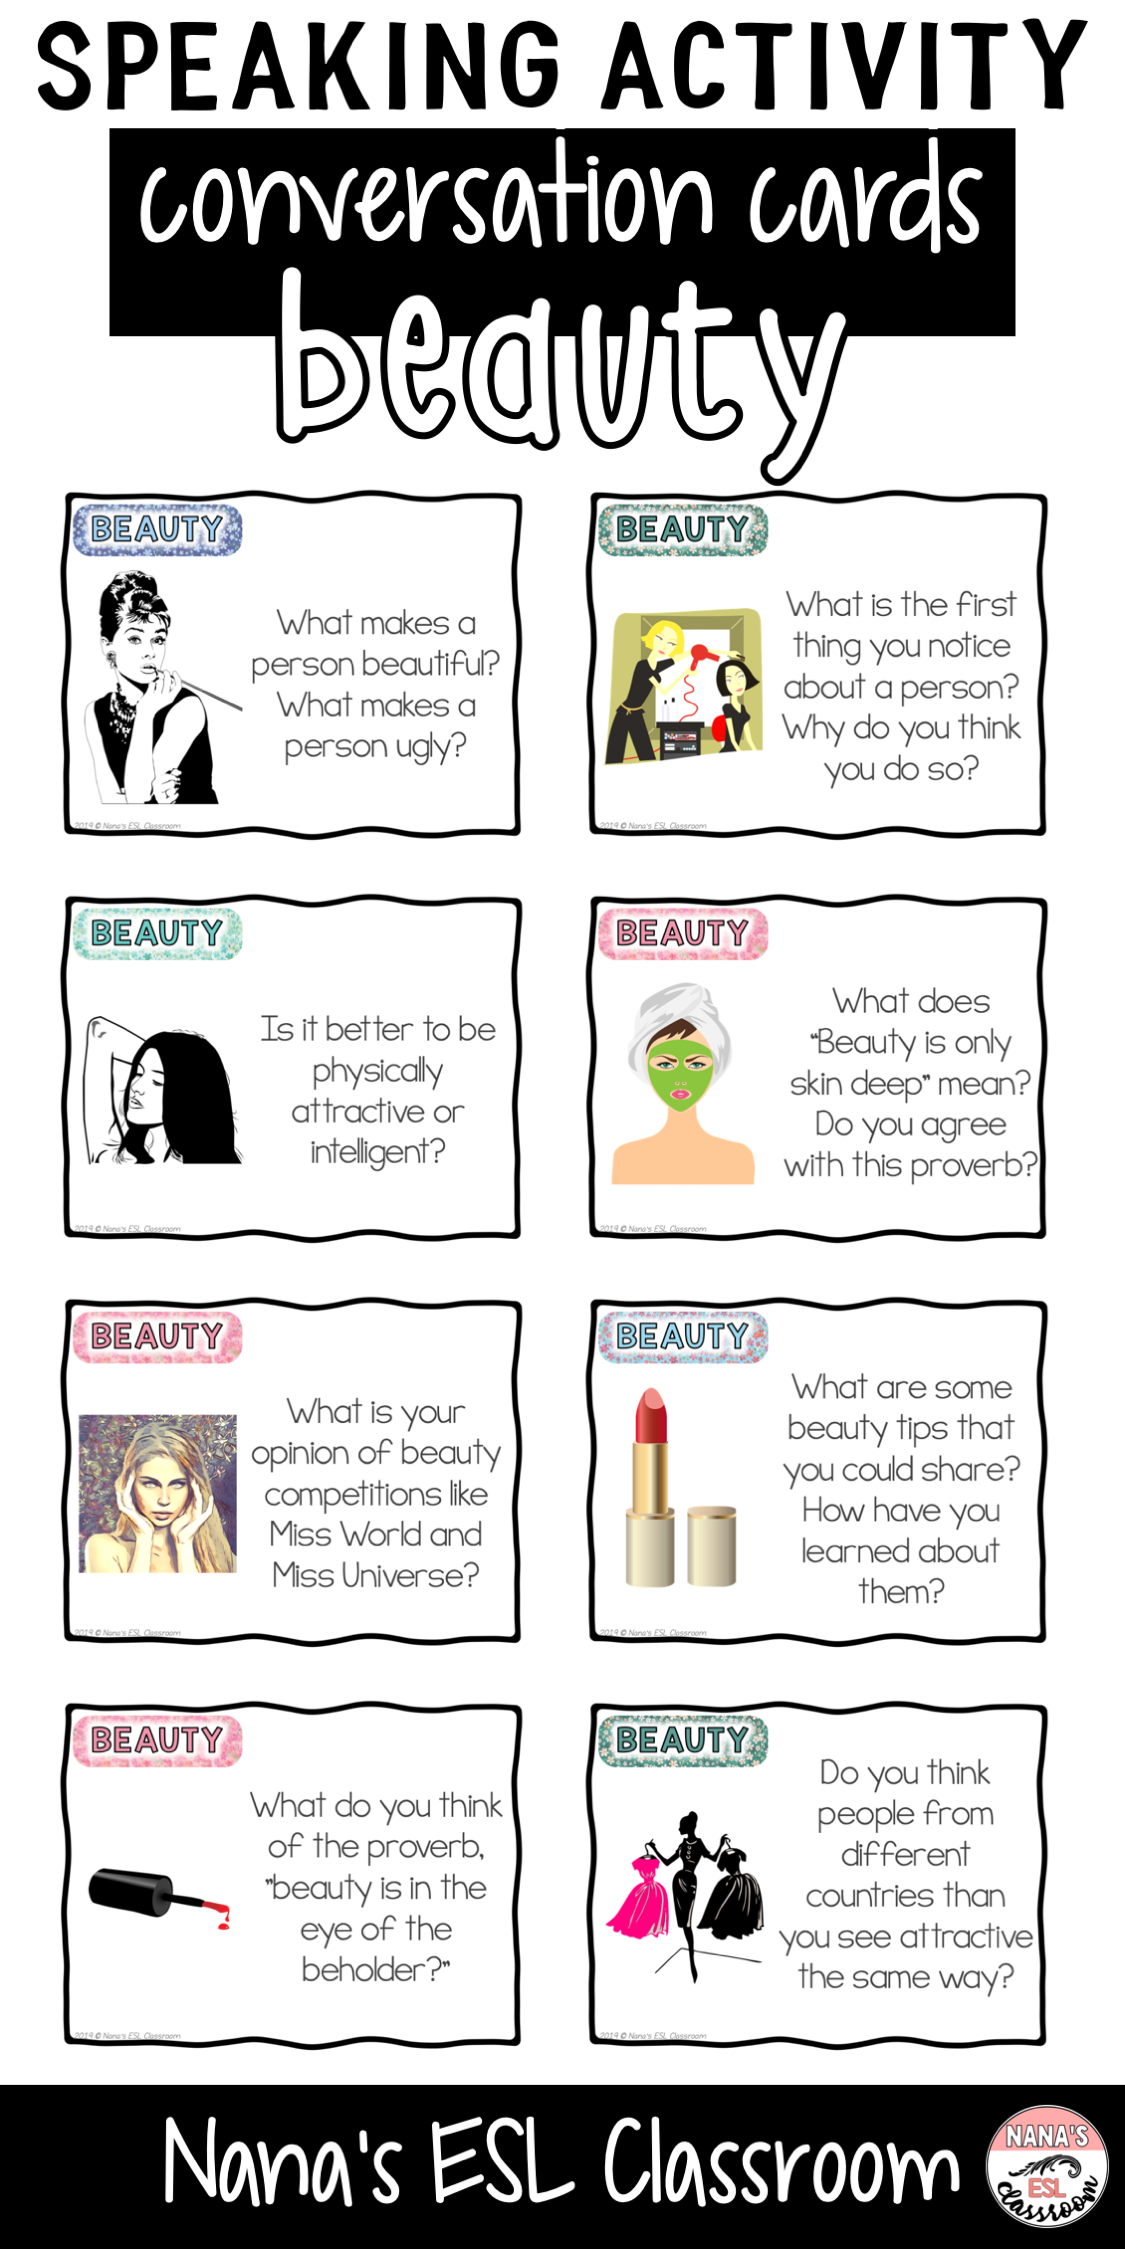 Conversation Starters About Beauty And Appearance